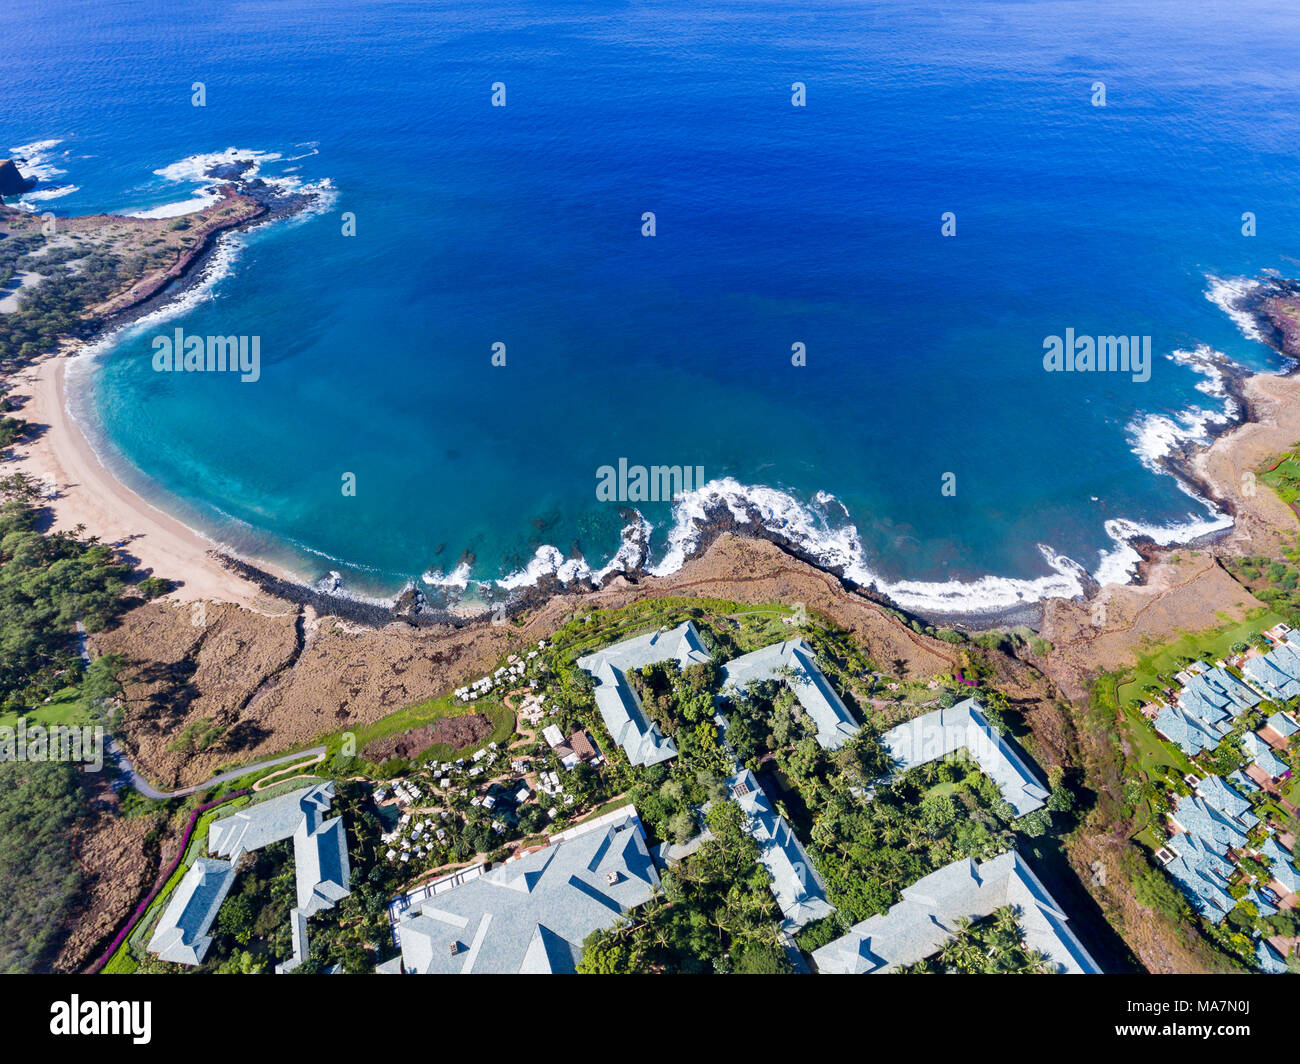 An aerial view of the golden beach and palm tree's at Hulopo'e Beach Park, and the Four Seasons resort at Manele Bay, Lanai Island, Hawaii, USA. Stock Photo